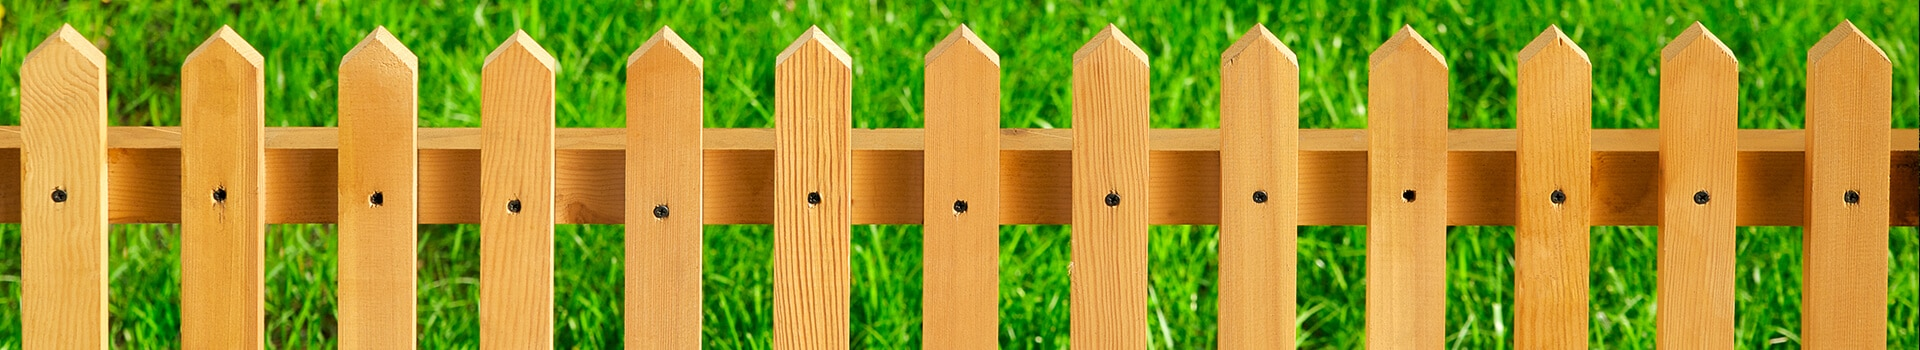 New Orleans Wood Fence Panels - Big Easy Fences